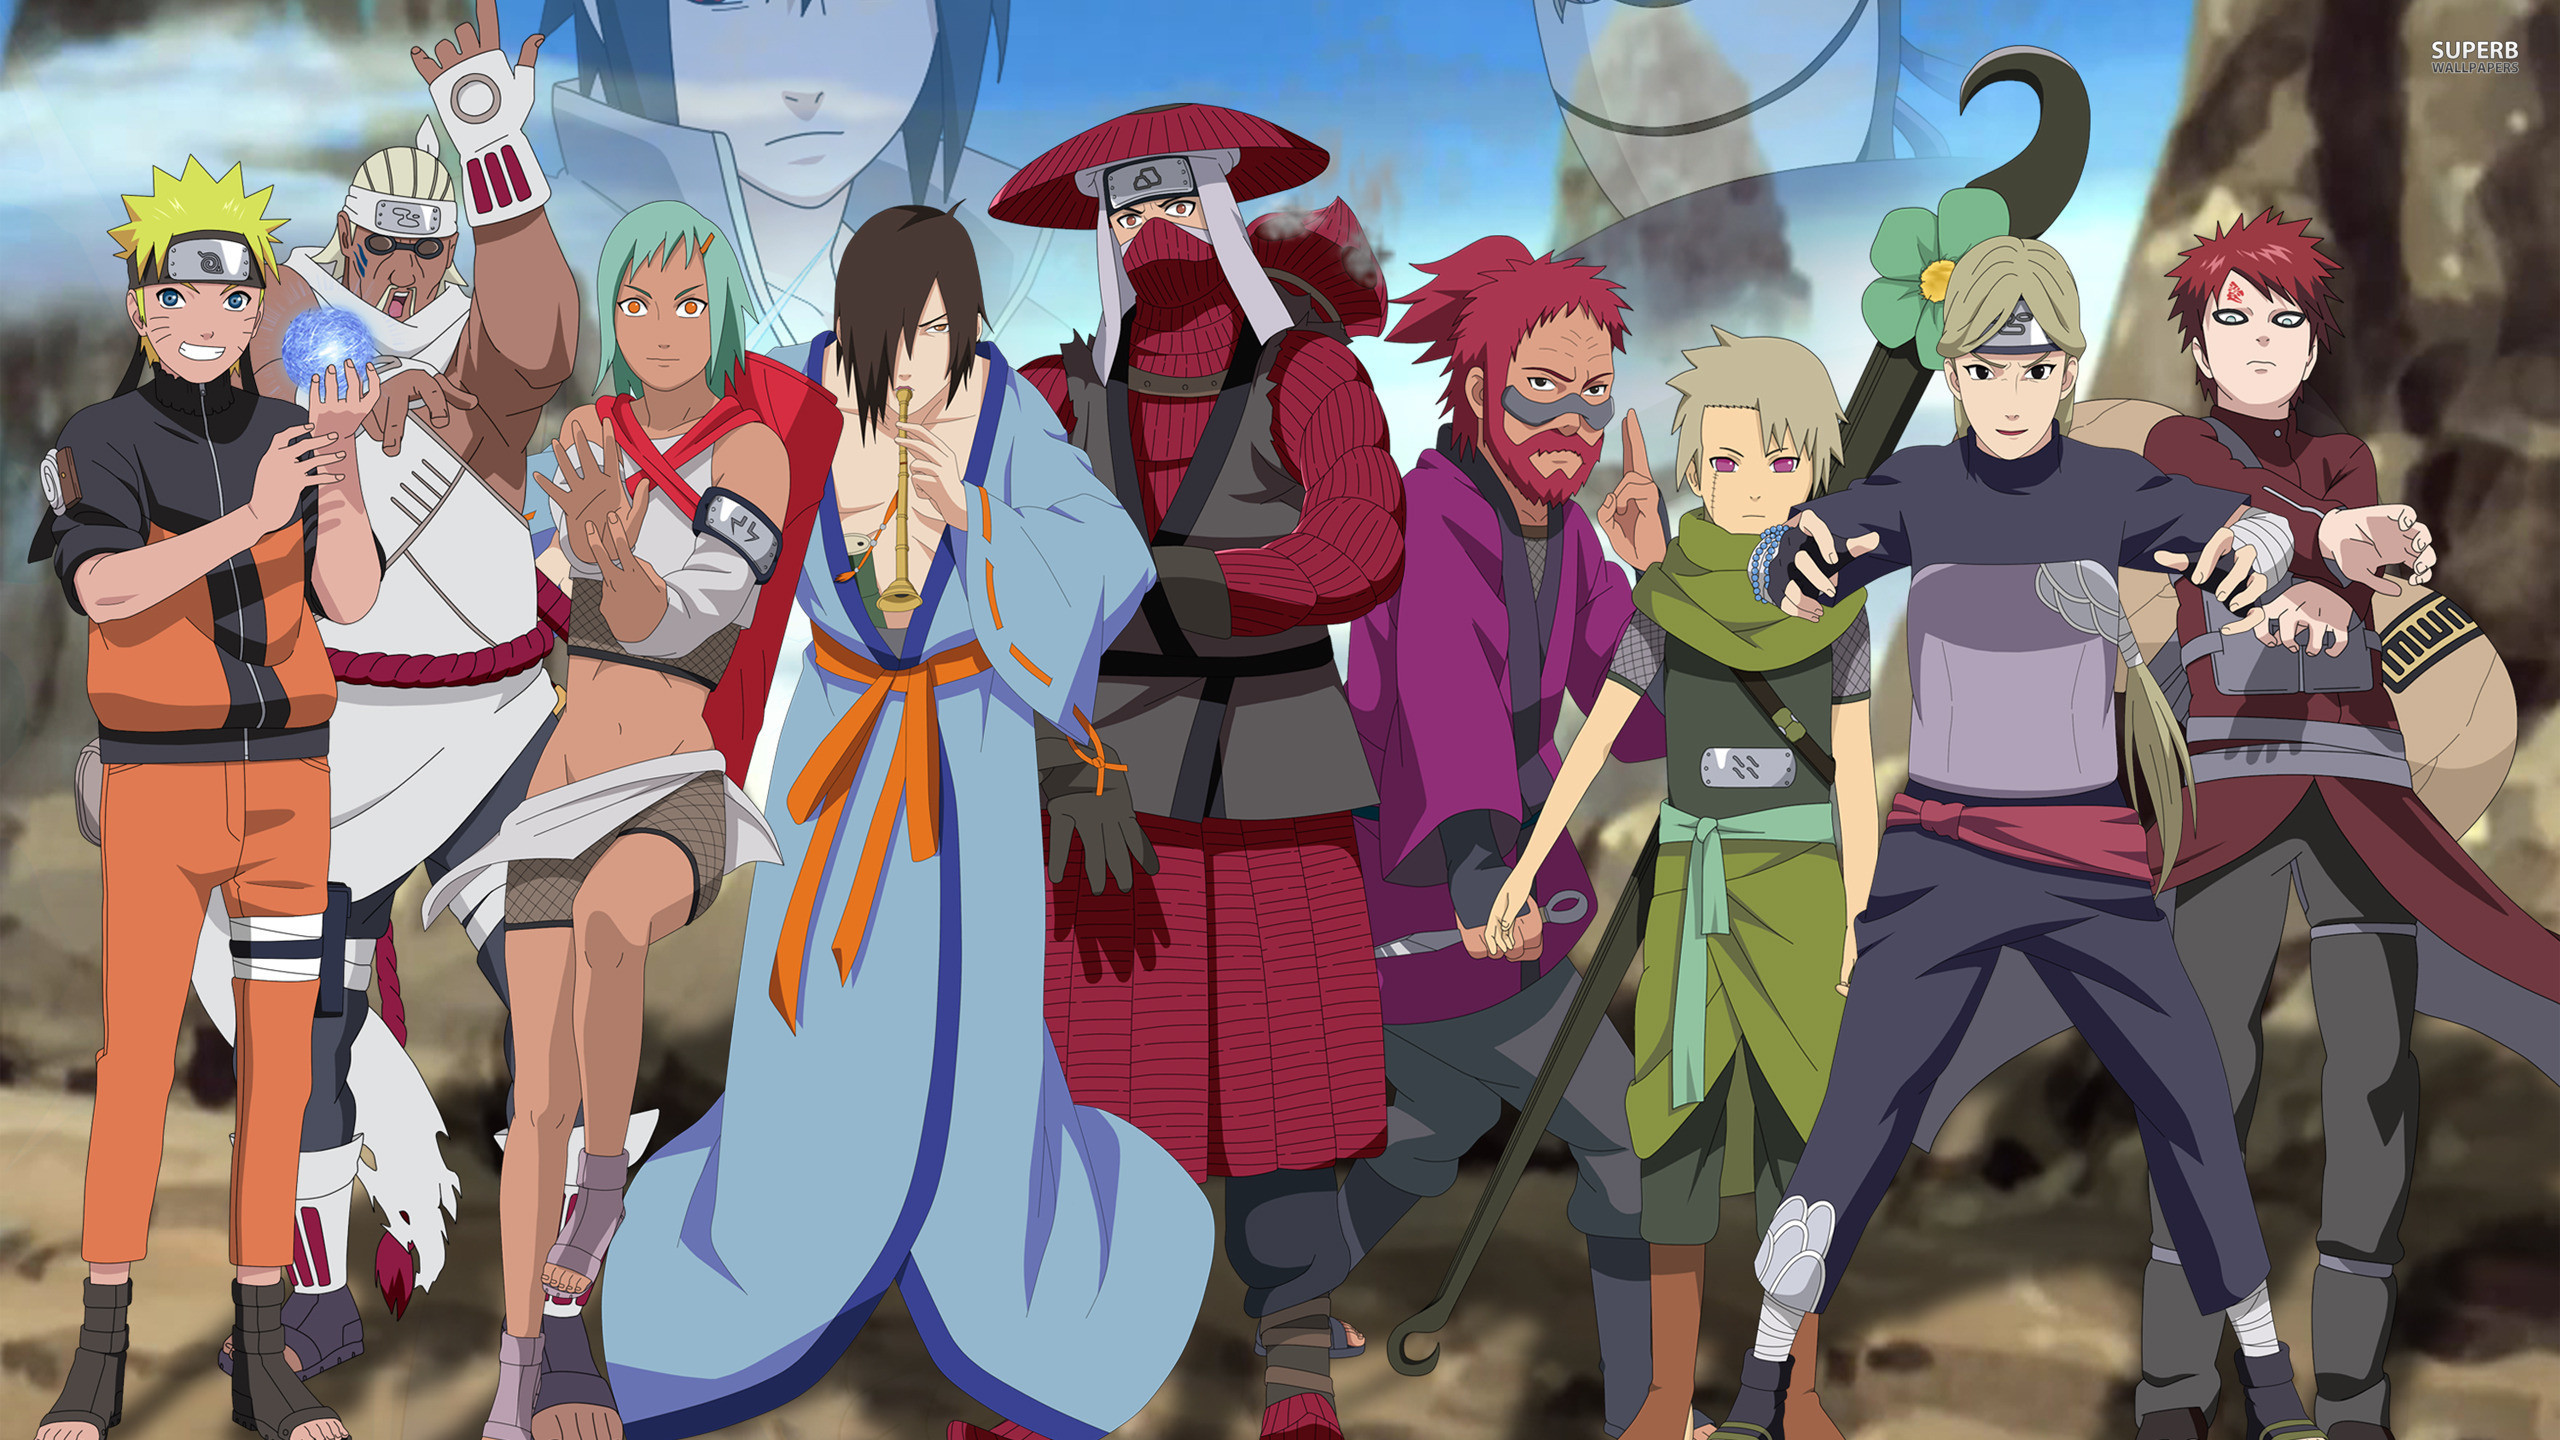 Naruto Shippuden Wallpapers High Quality Resolution